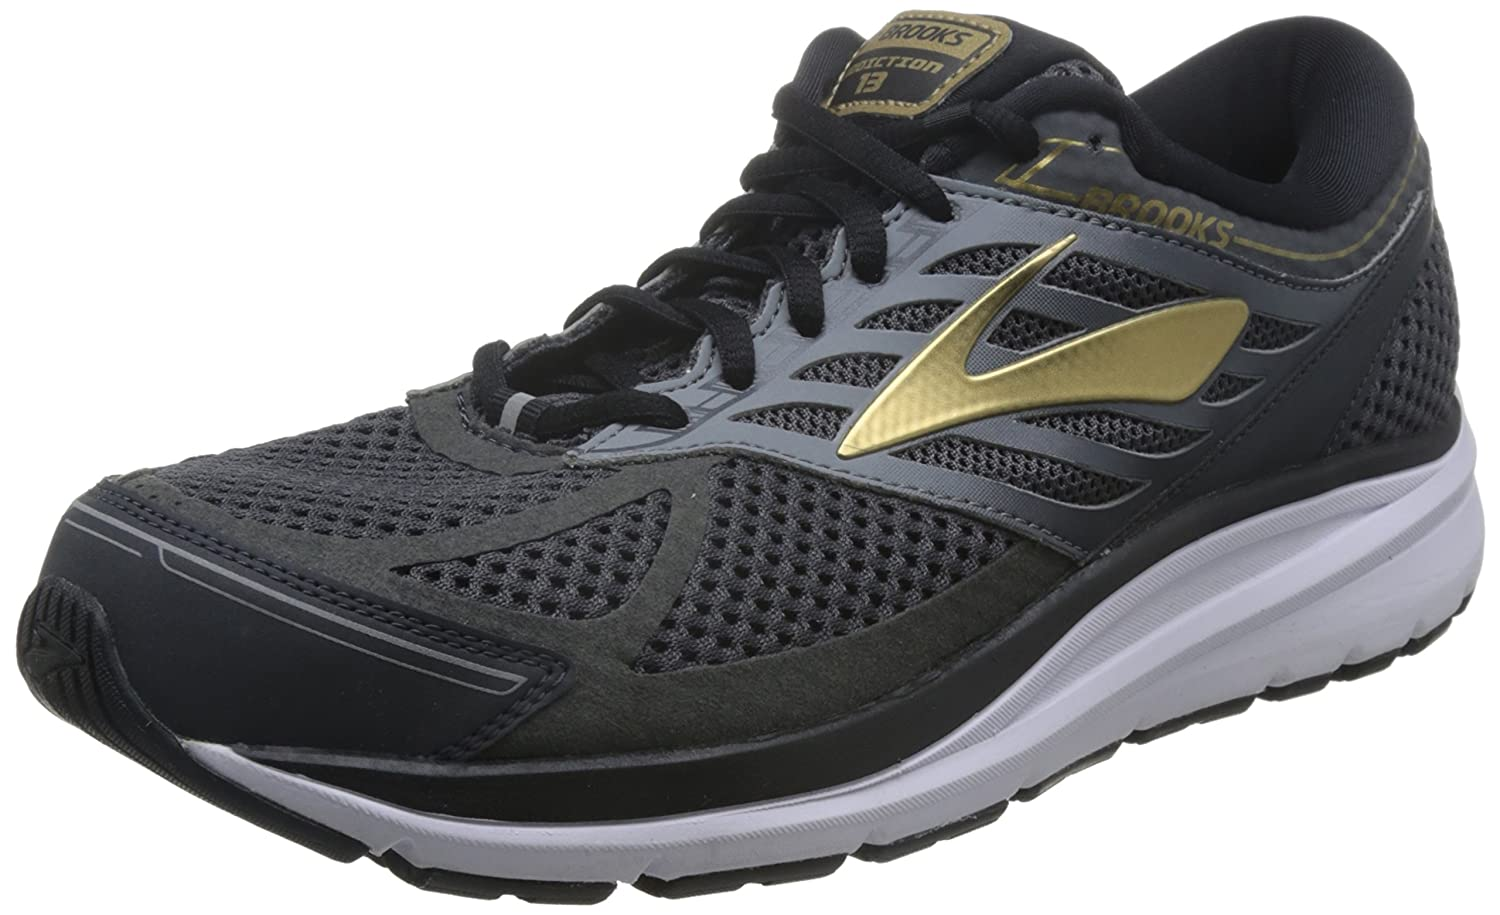 Brooks Mens Addiction 13 B01MRHZM7Y 15 EE US|Black/Ebony/Metallic Gold